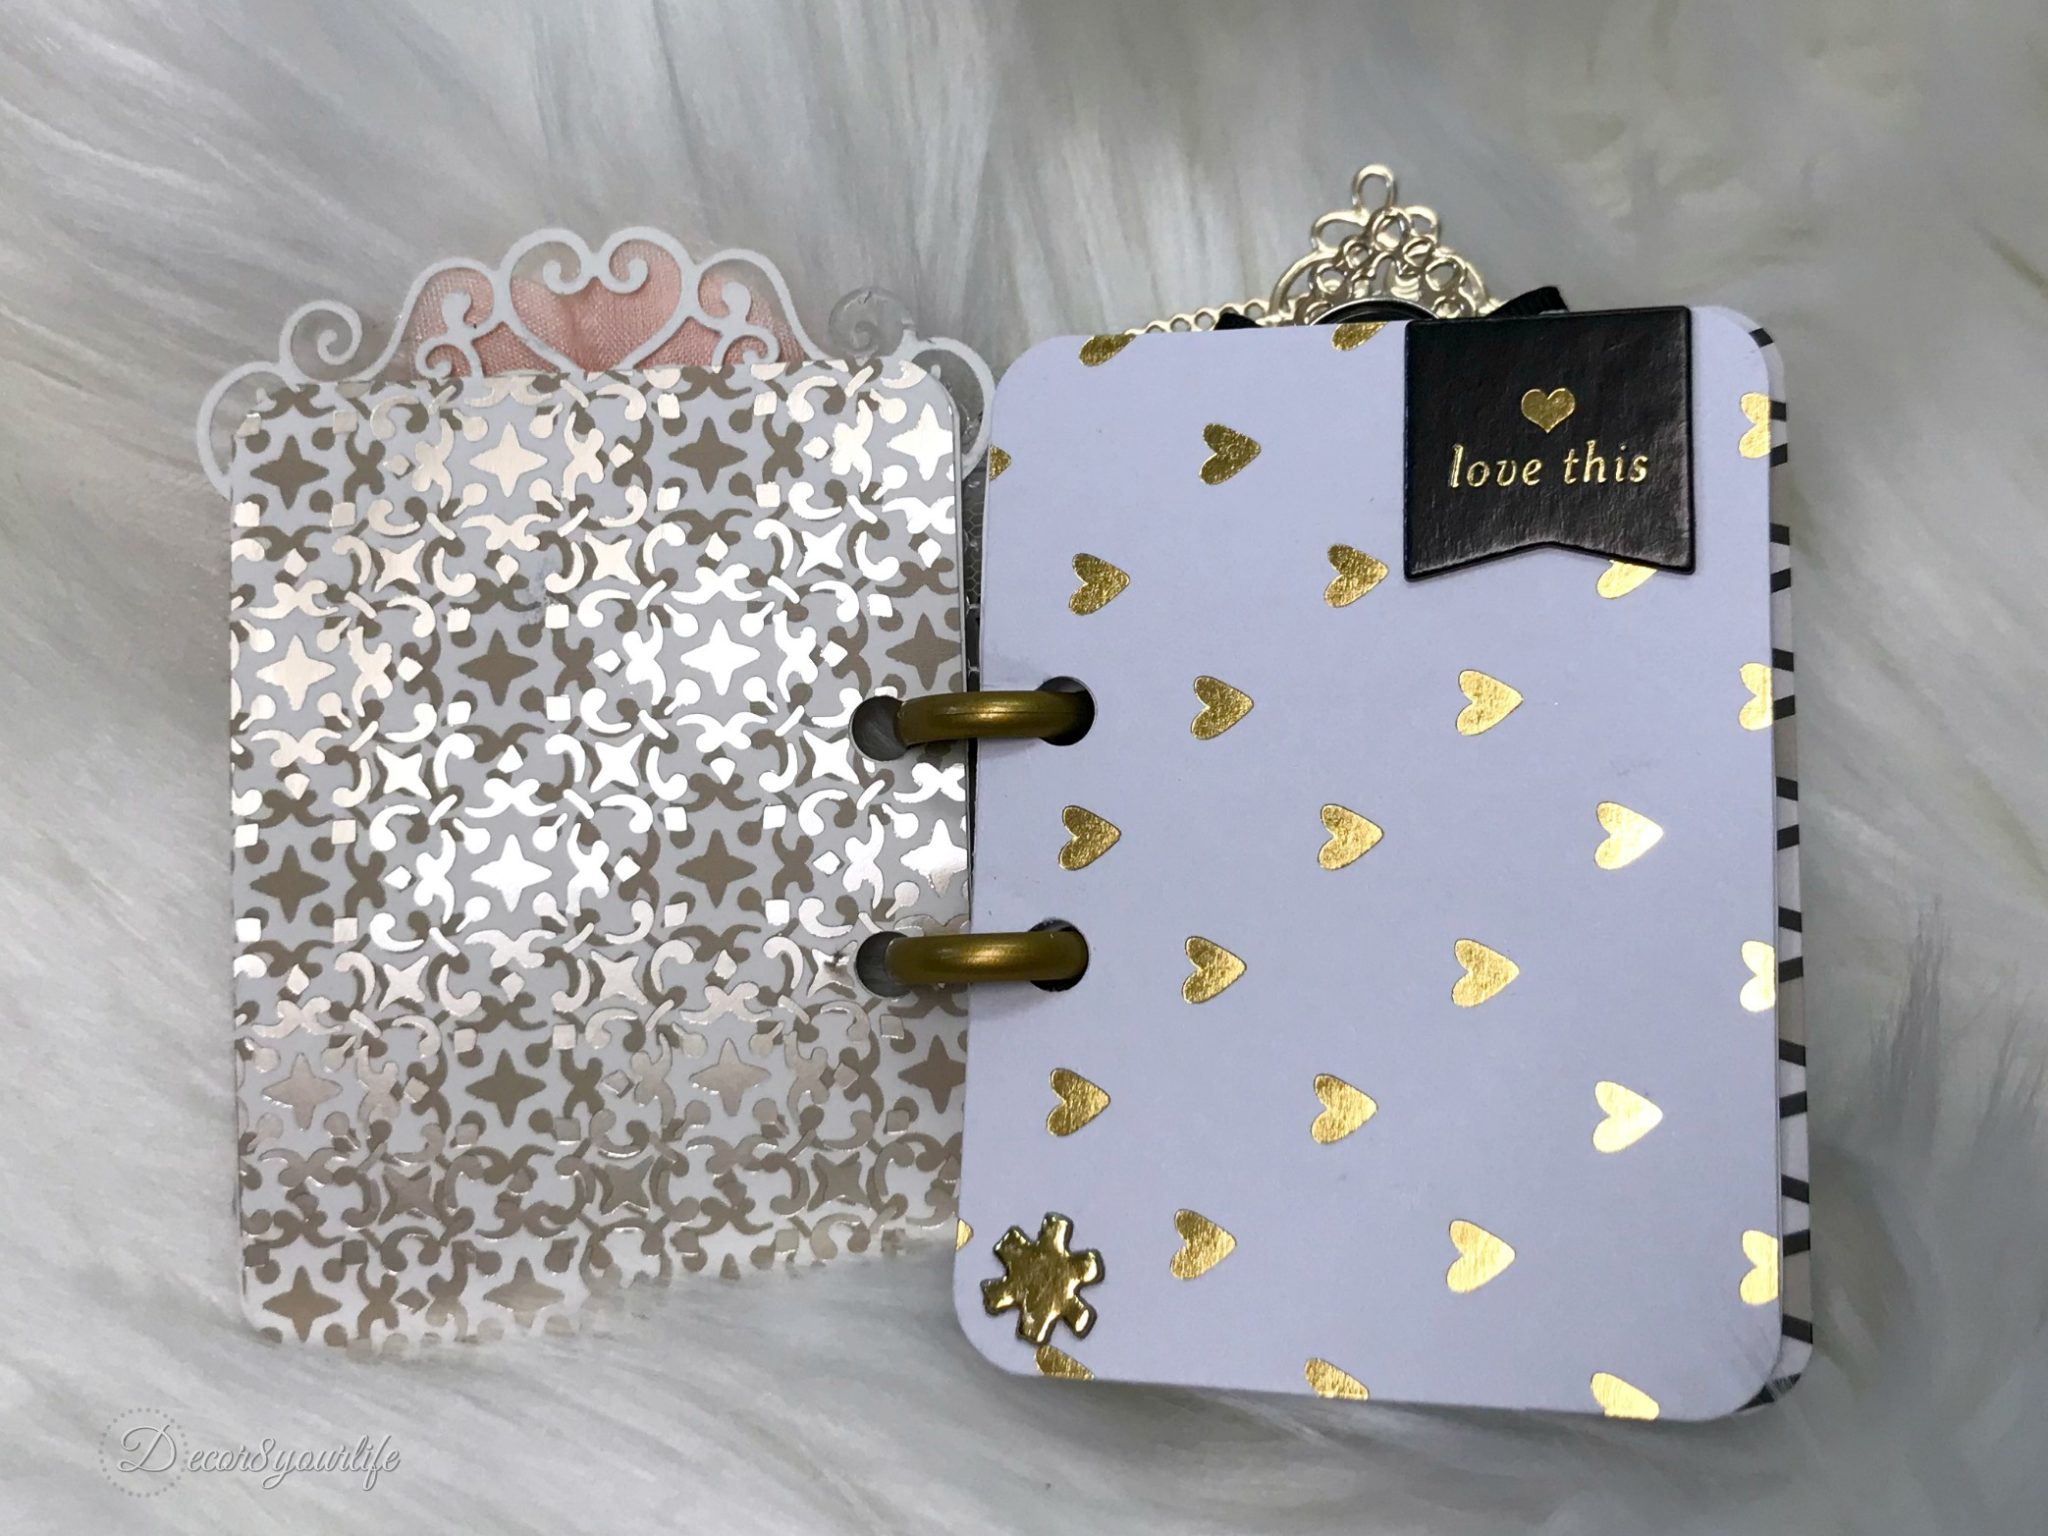 http://www.decor8yourlife.com/wp-content/uploads/2018/05/mini-album-tutorial-9.jpg